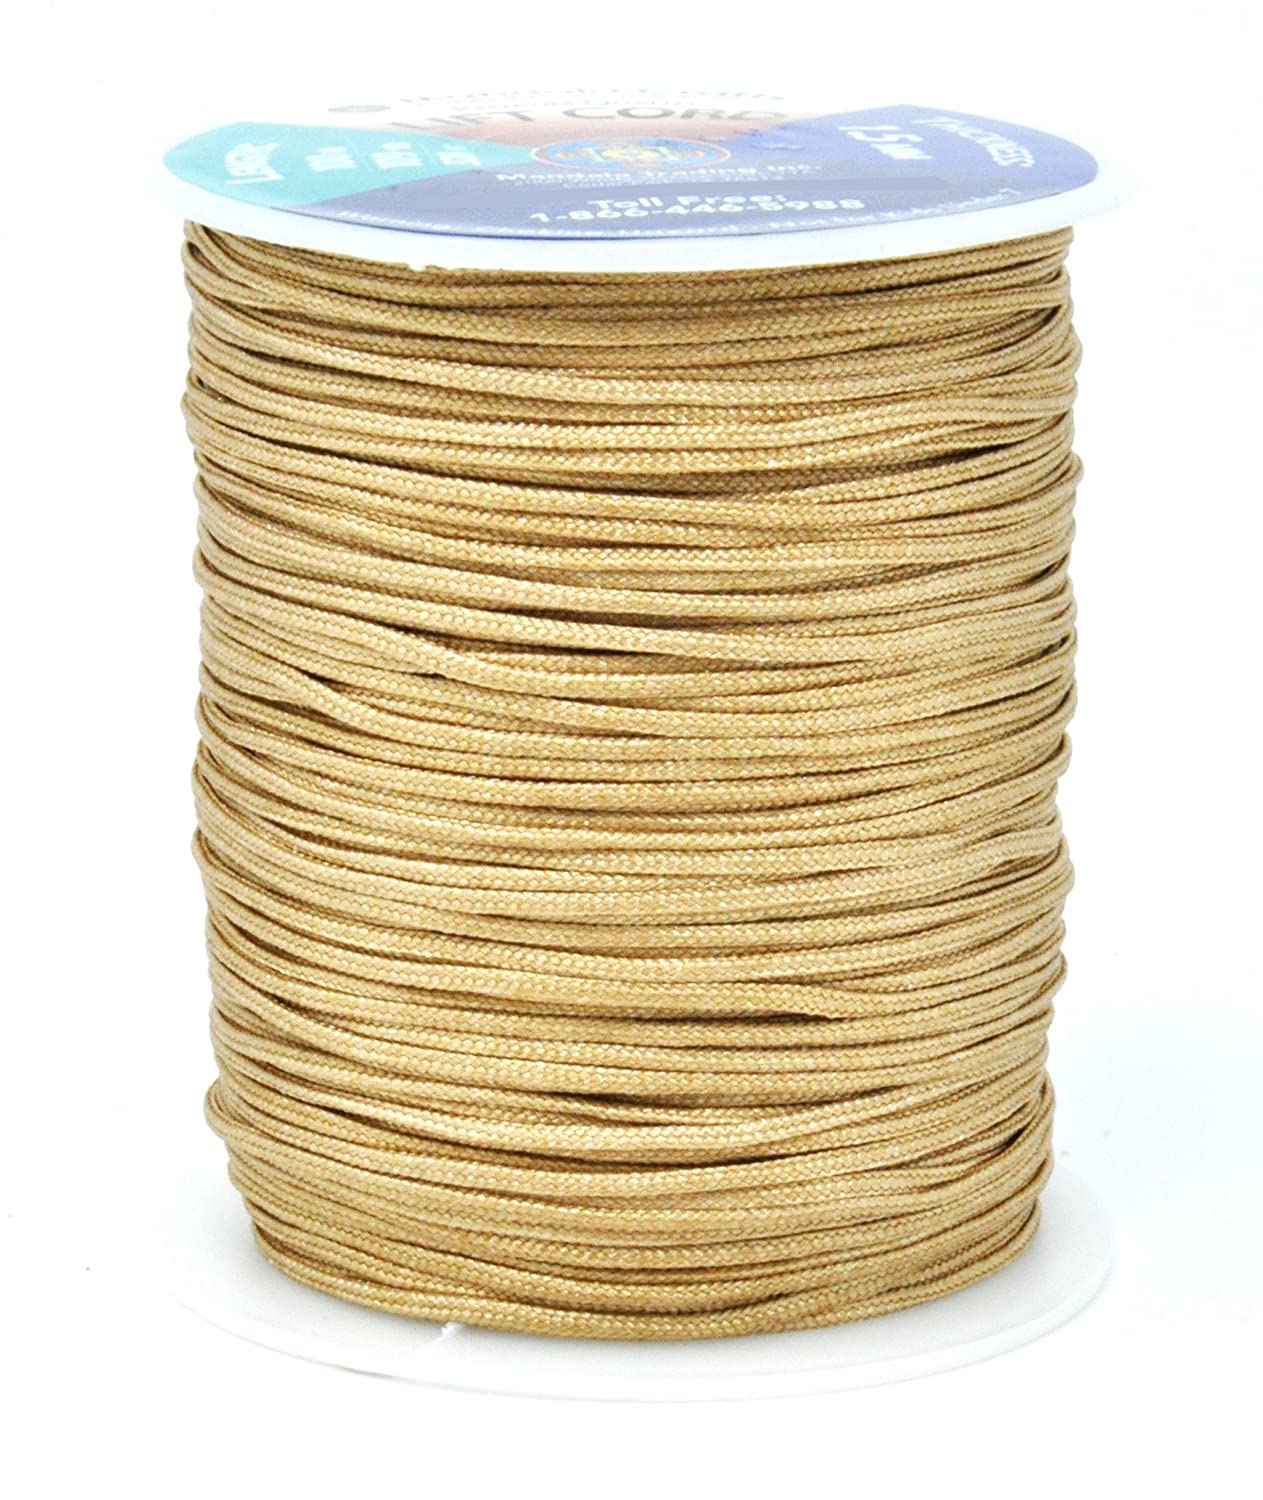 and Rollers Windows Lift Cord Replacement from Braided Nylon for RVs 2mm, Oak Shades Mandala Crafts Blinds String